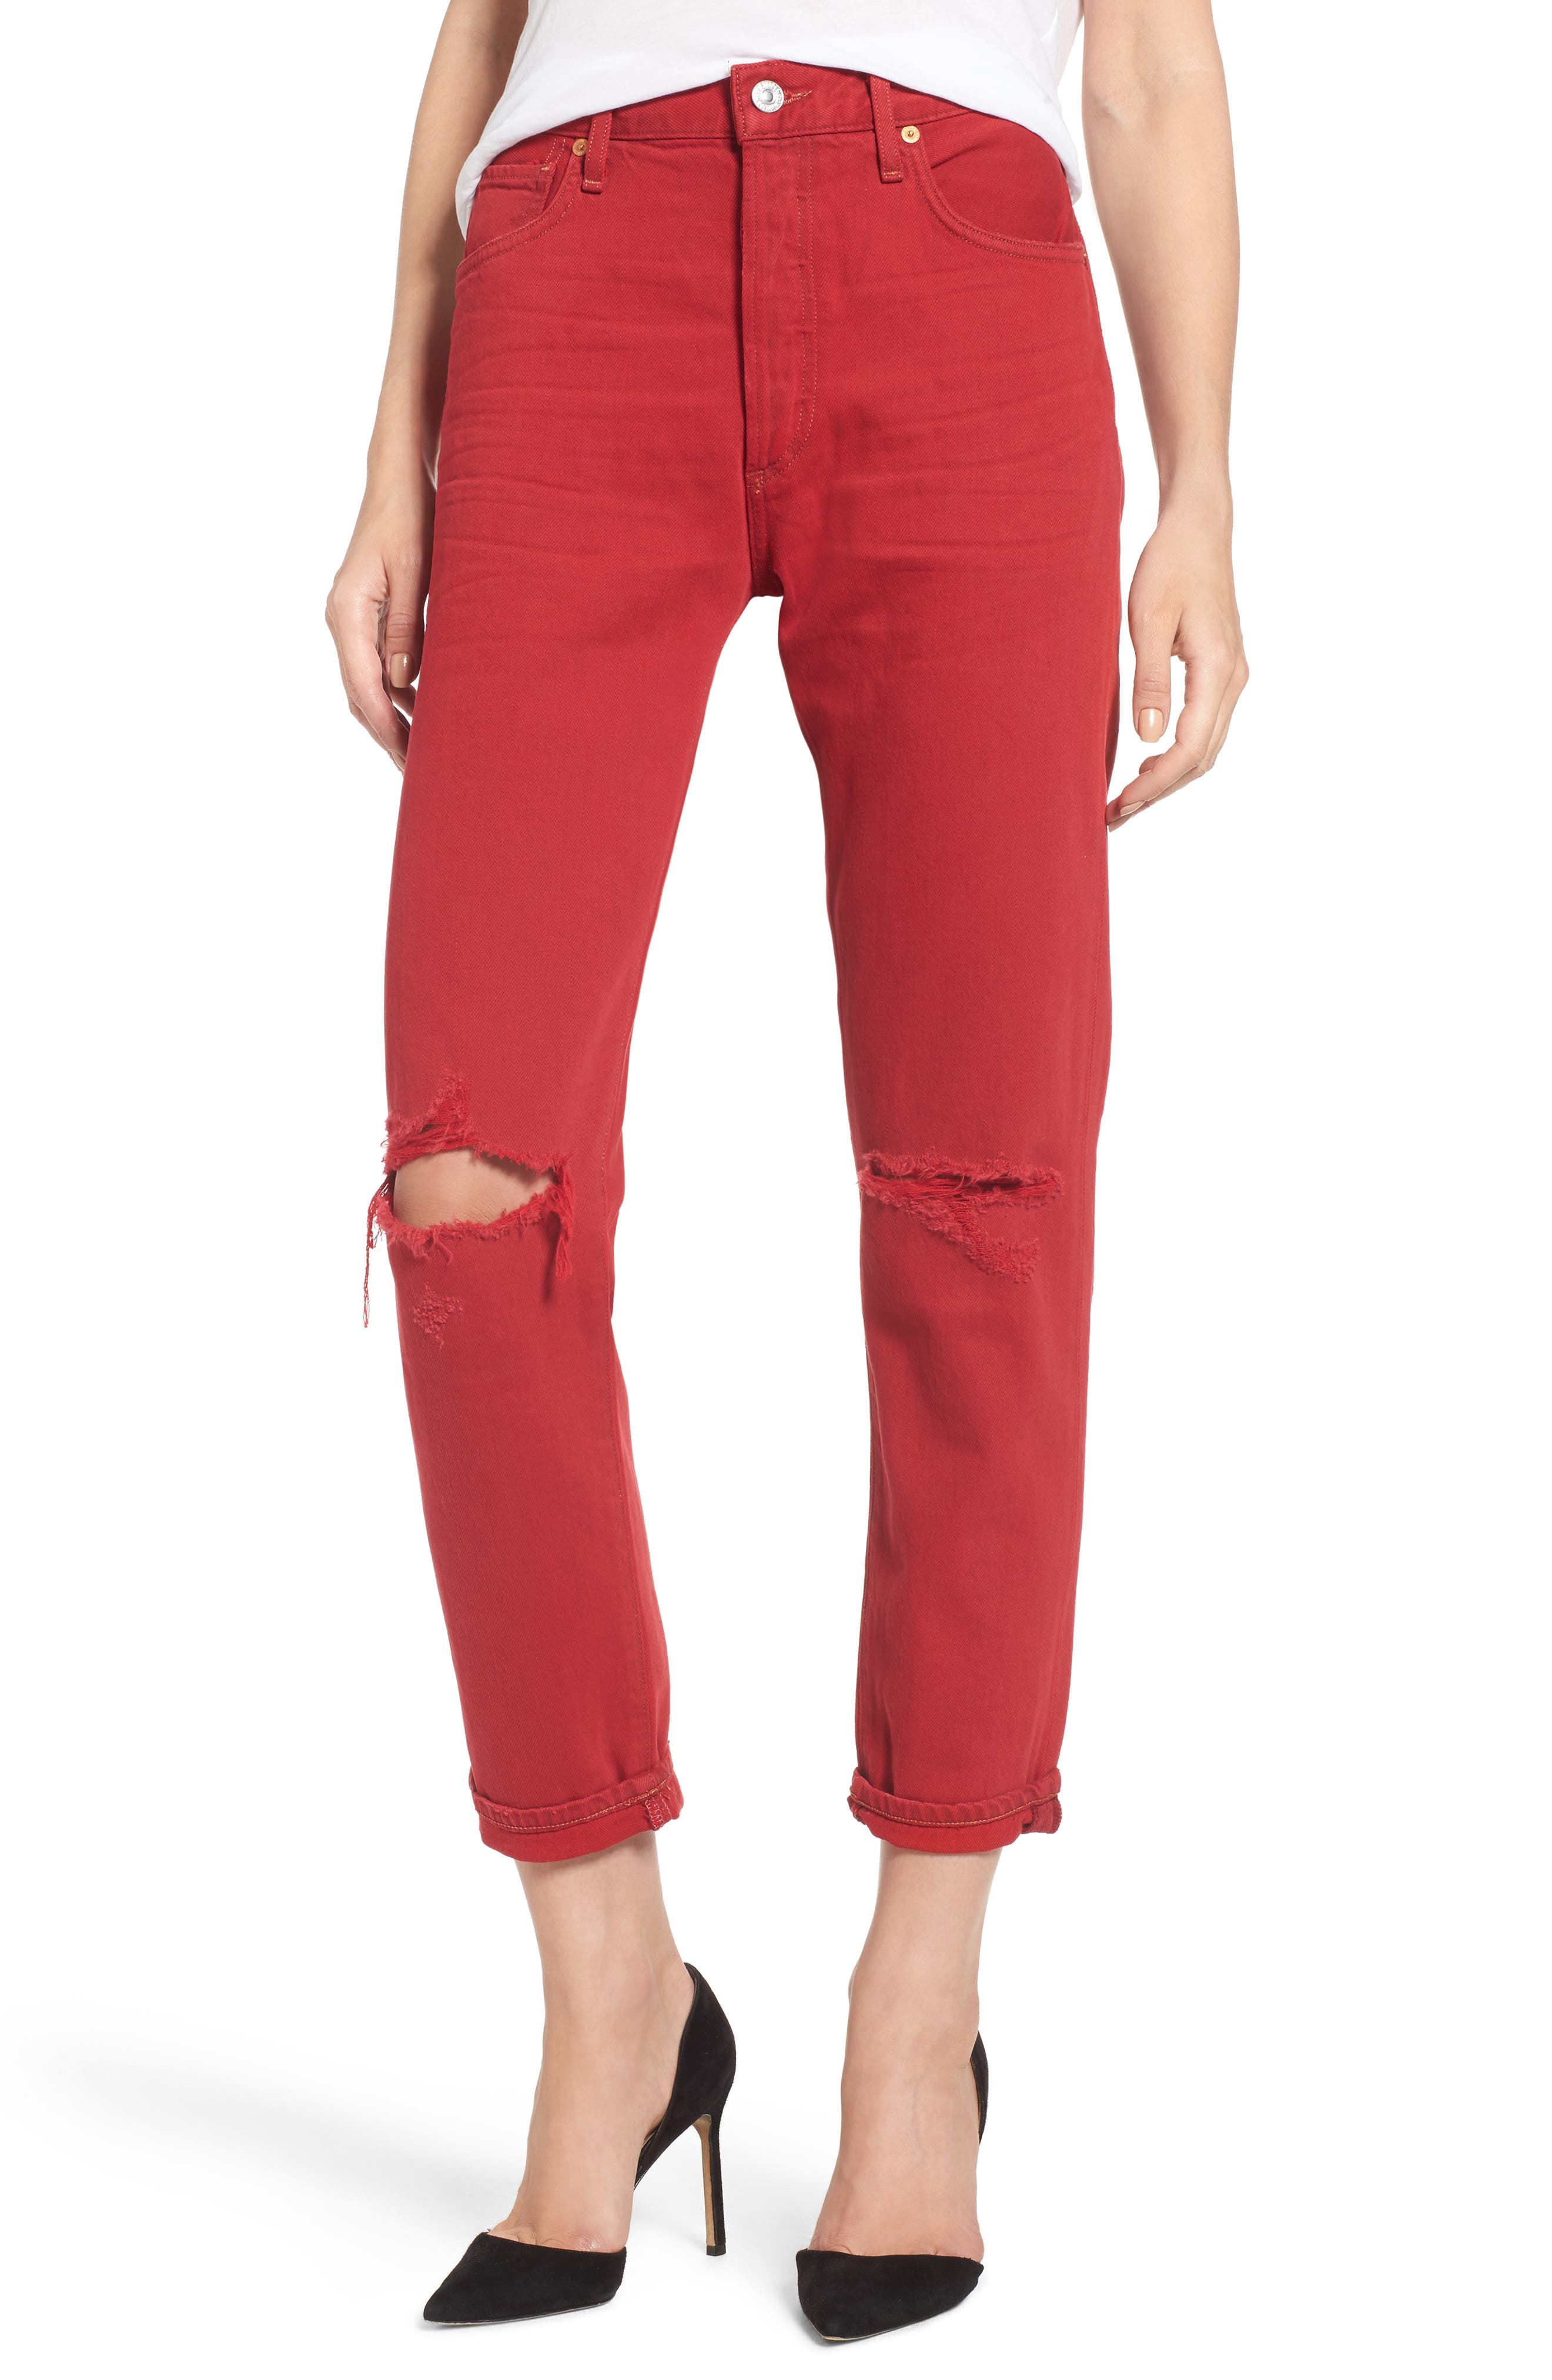 Alternate Image 1 Selected - Citizens of Humanity Liya High Waist Slim Boyfriend Jeans (Double Dare)